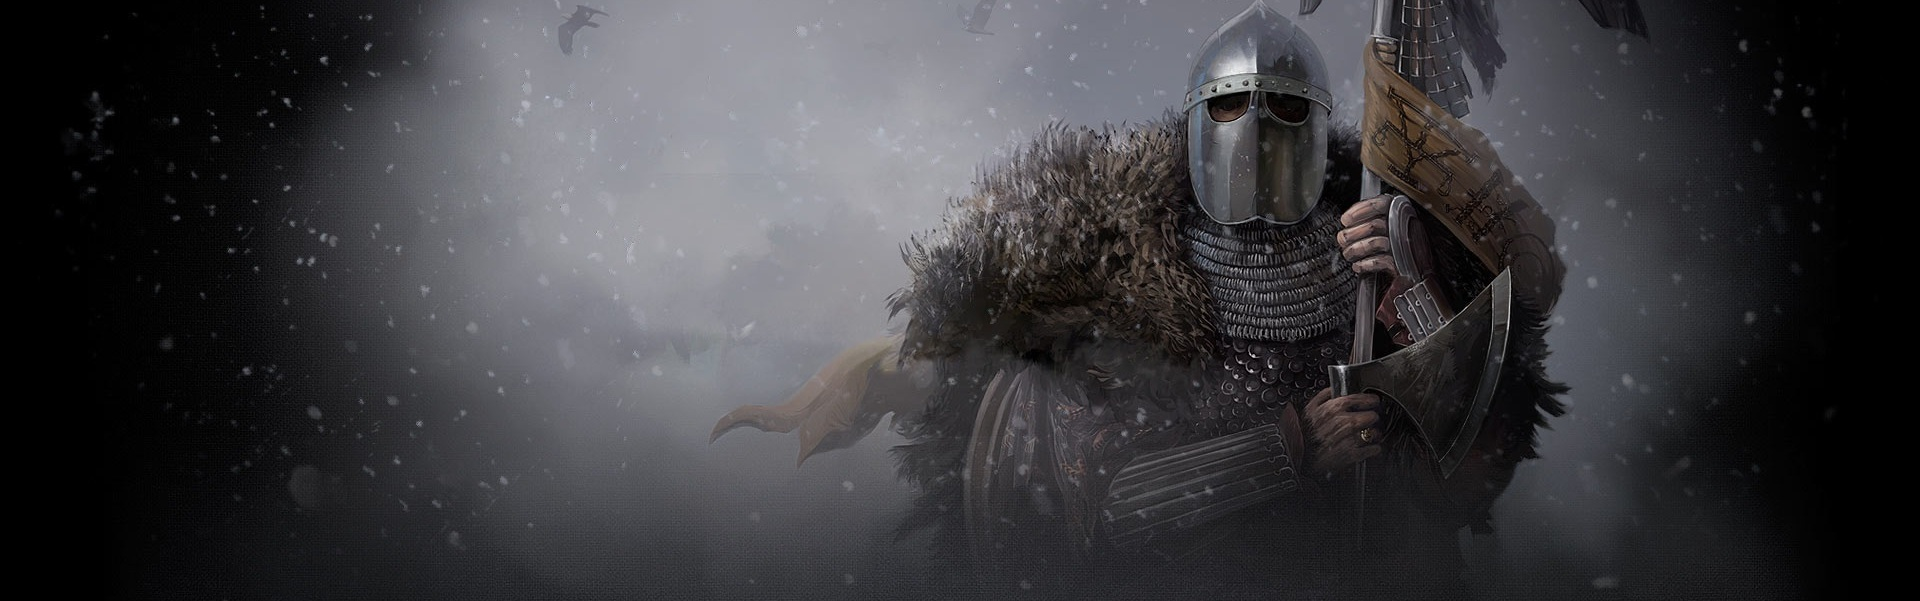 Mount & Blade: Warband Gog.com Key GLOBAL